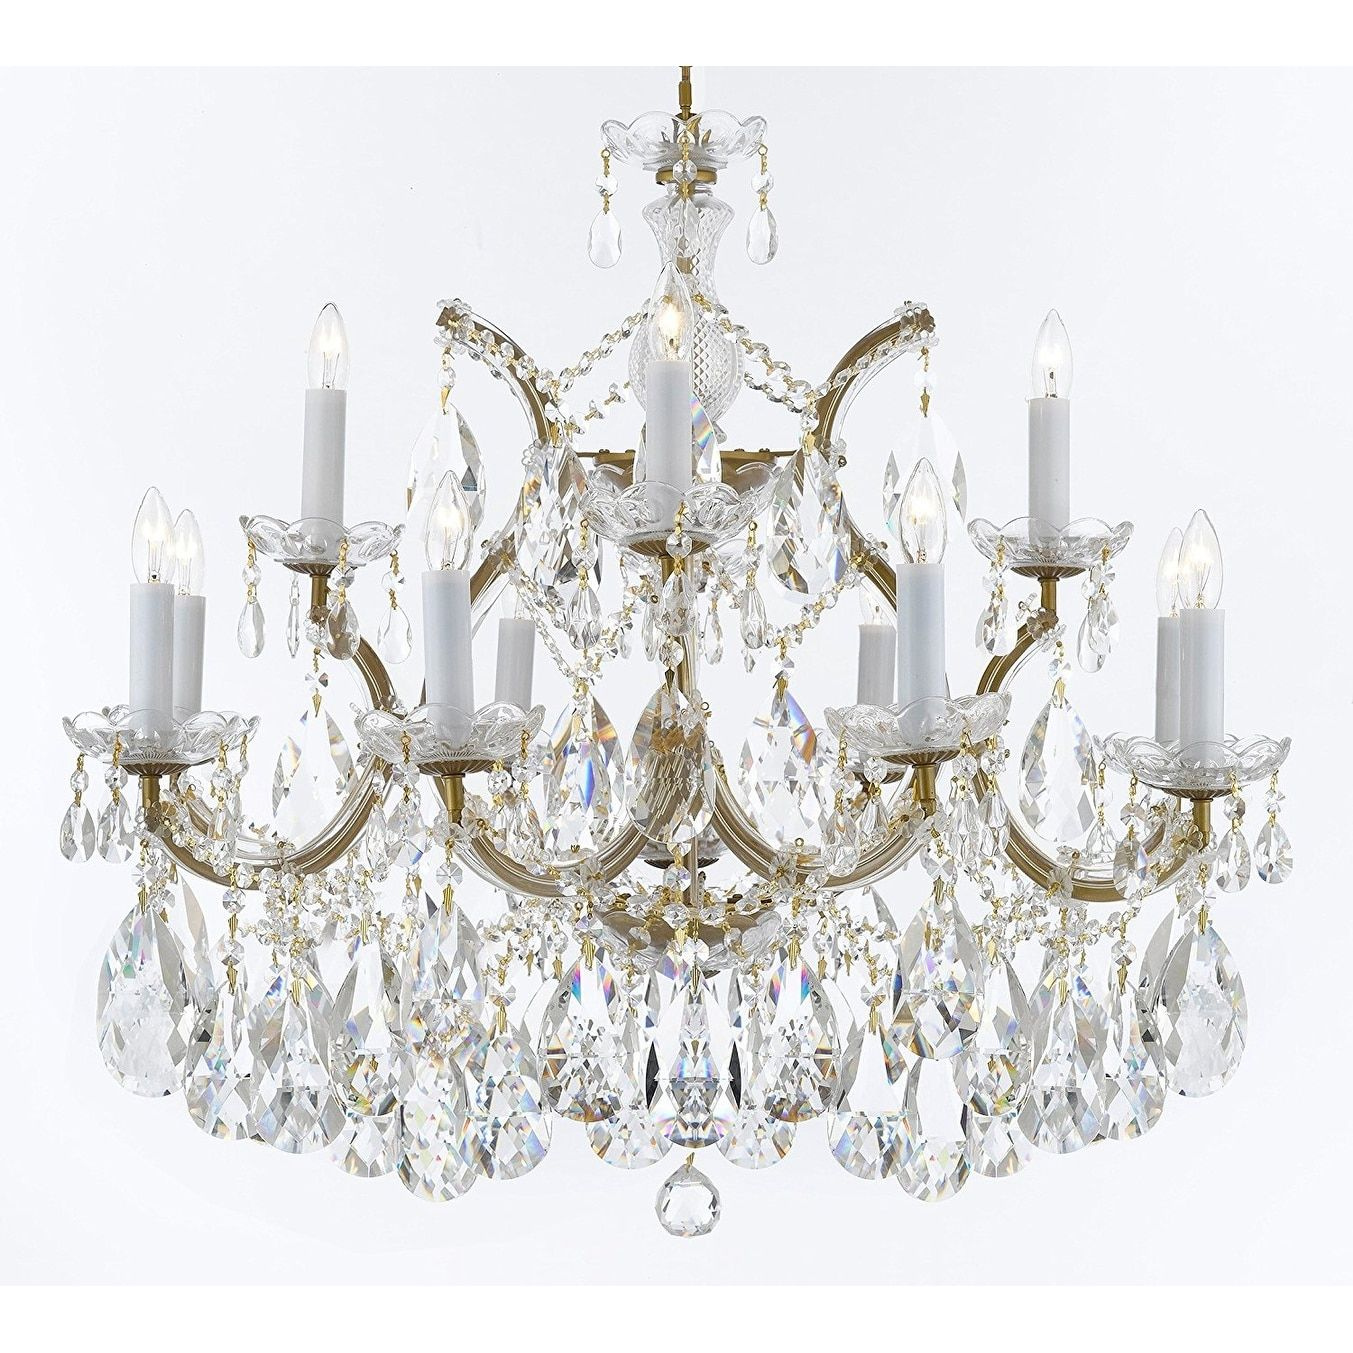 Maria theresa crystal chandelier w large luxe diamond cut crystals gallery maria theresa crystal chandelier w large luxe diamond cut crystals aloadofball Image collections